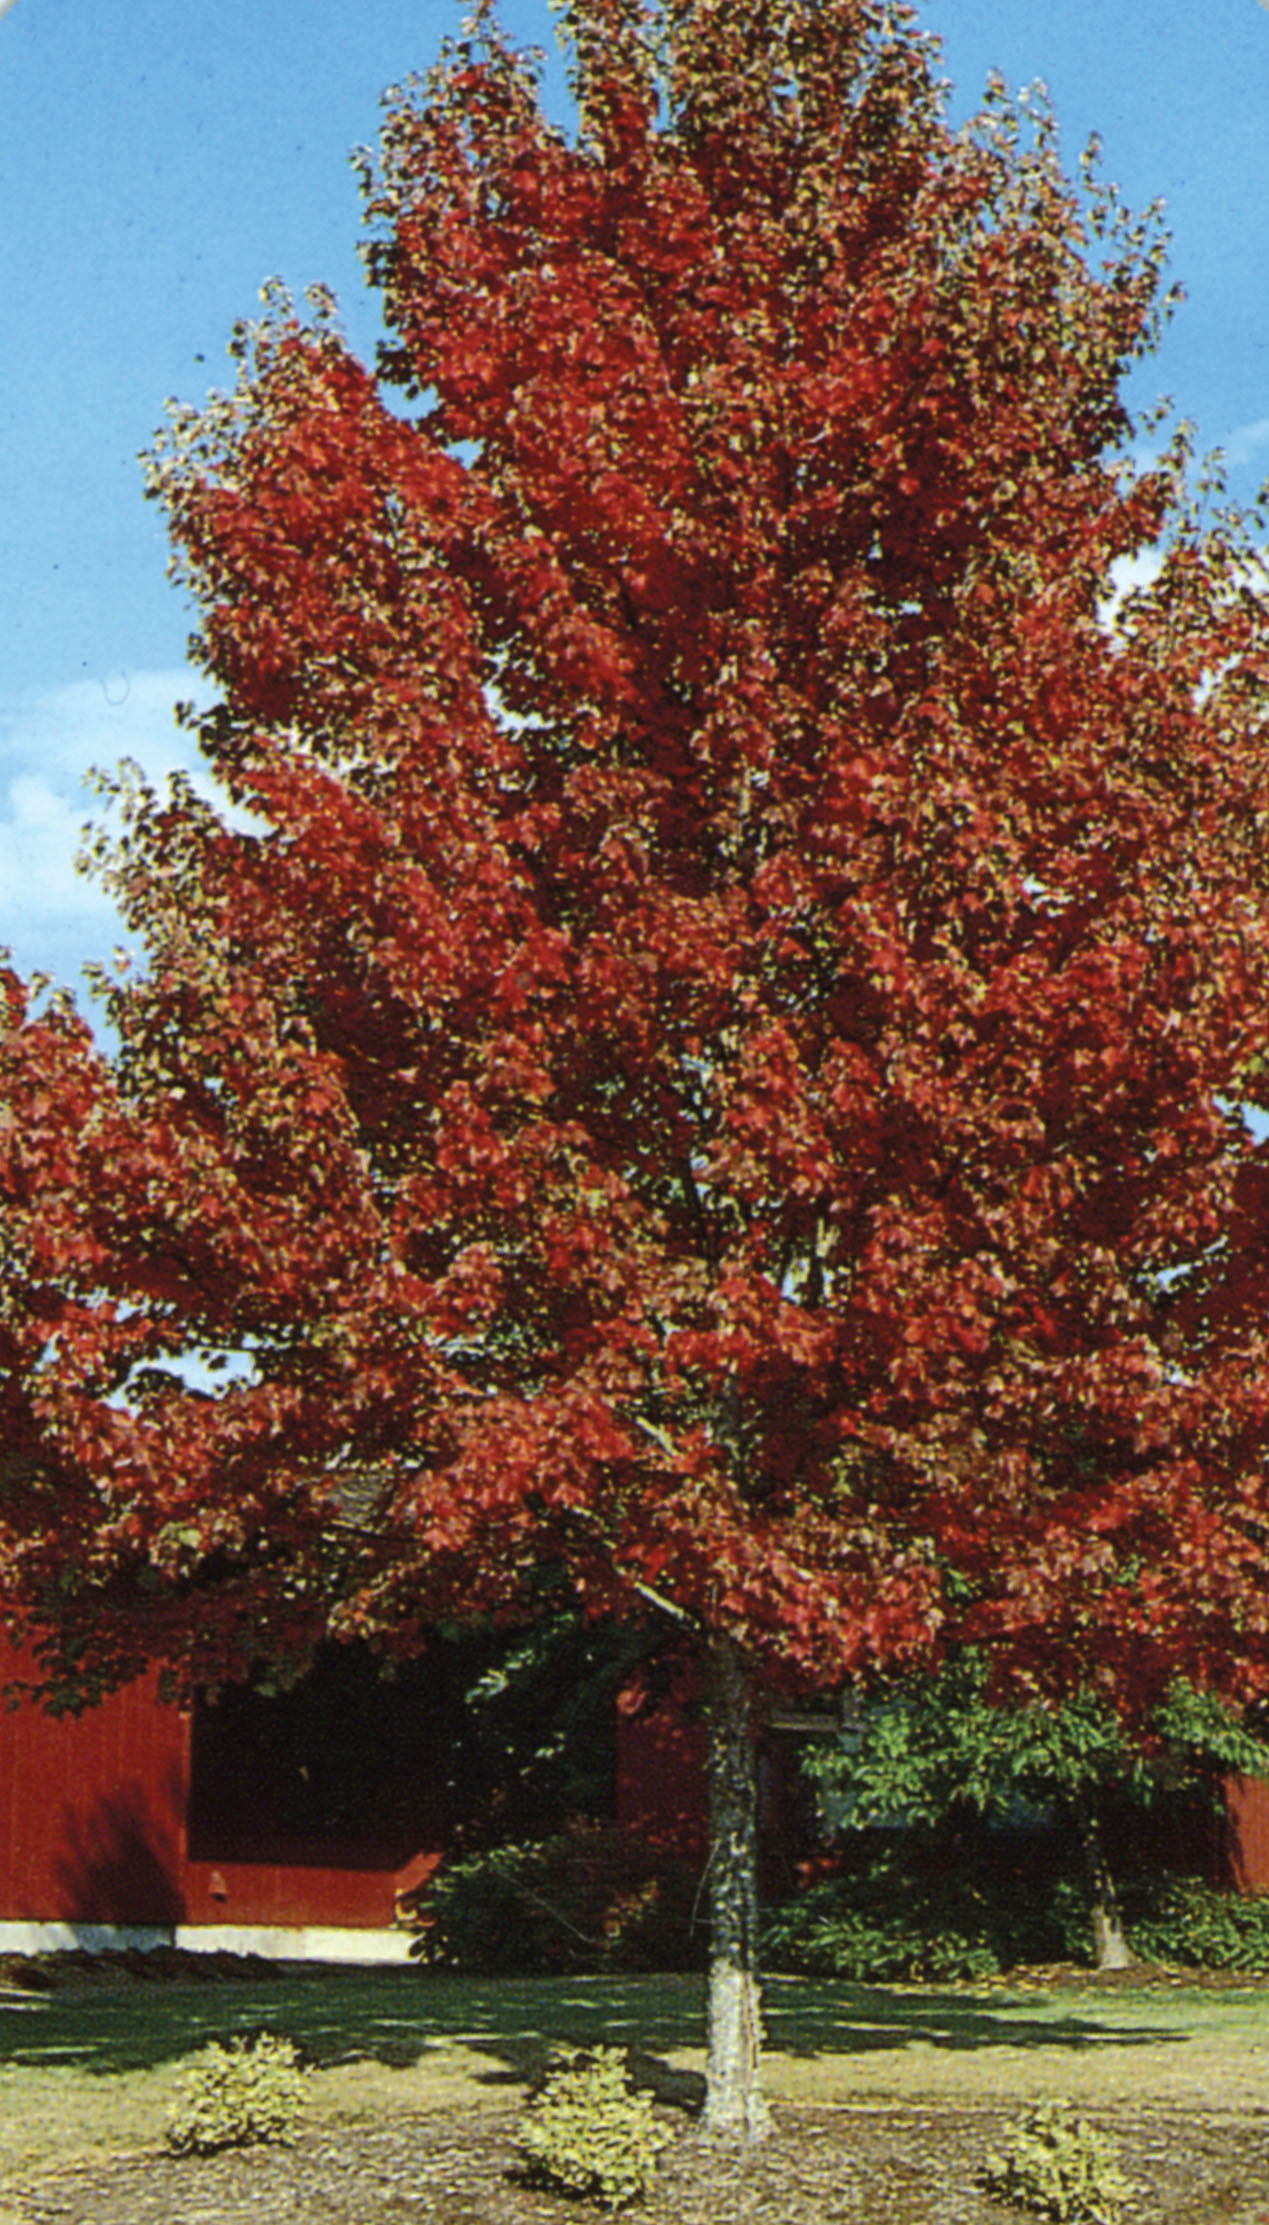 11431_RedMaple.jpg